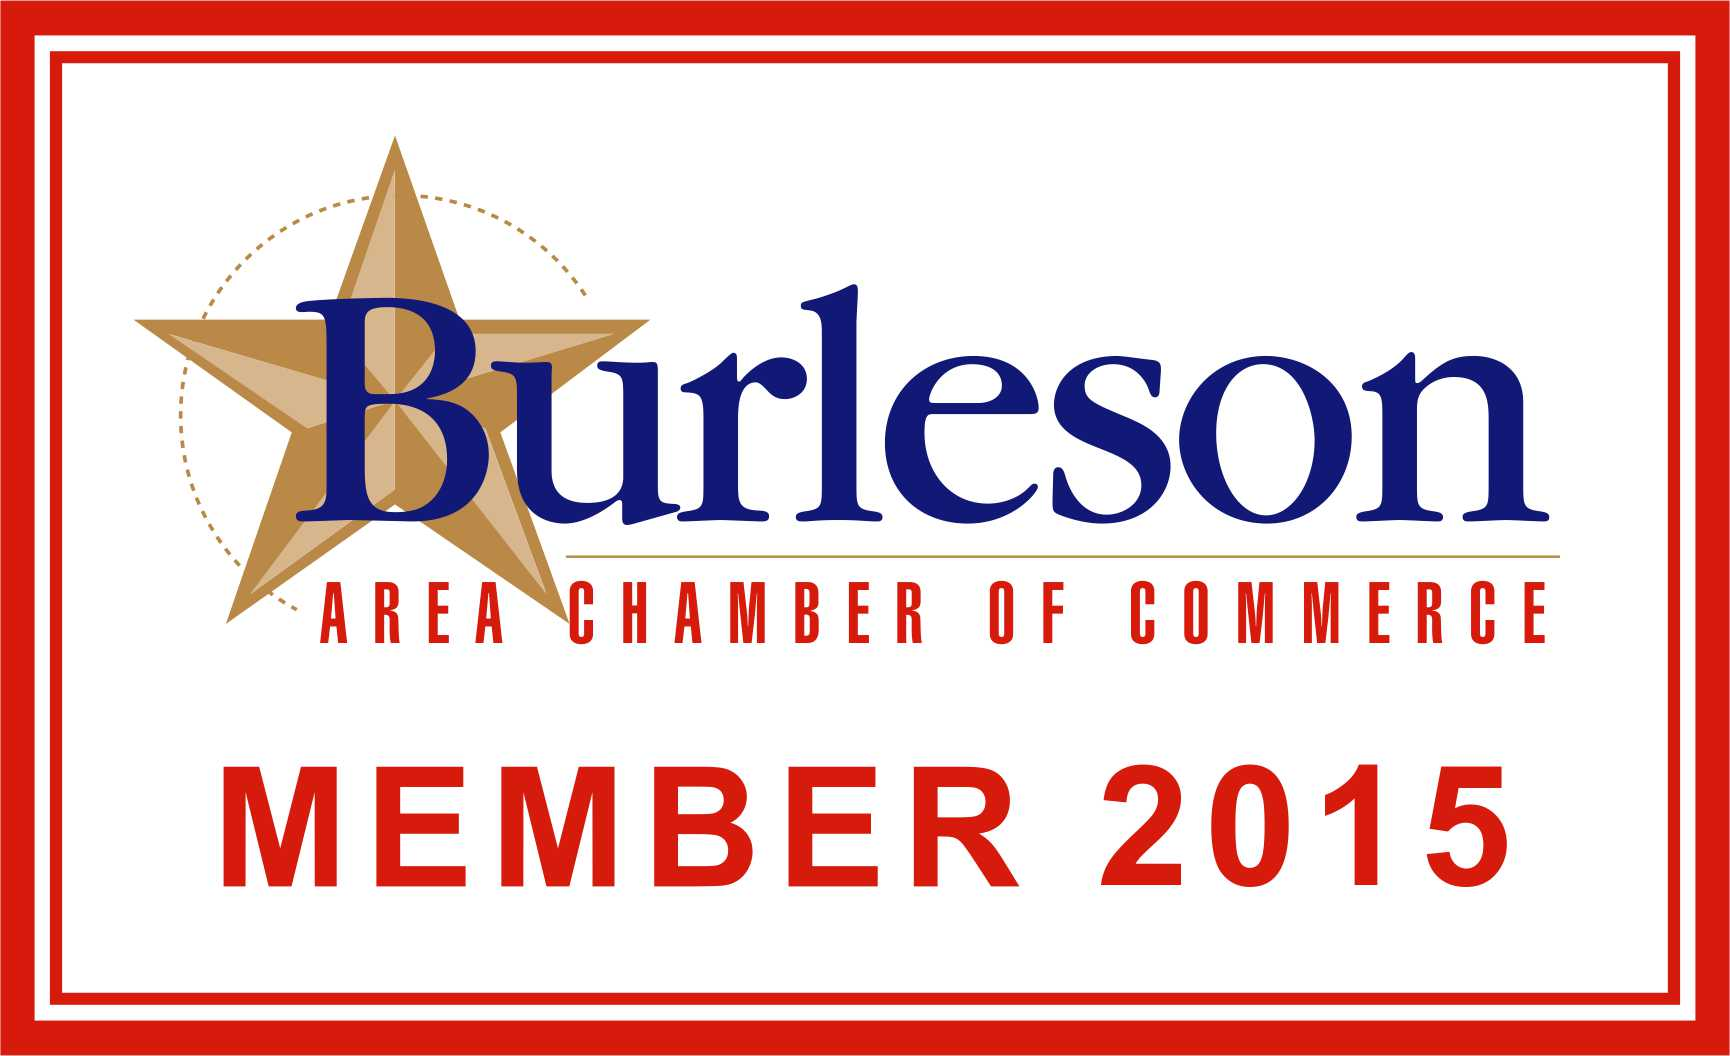 Kathy Buys Houses is a proud member of Burleson, Texas Chamber of Commerce, www.kathybuyshouses.net